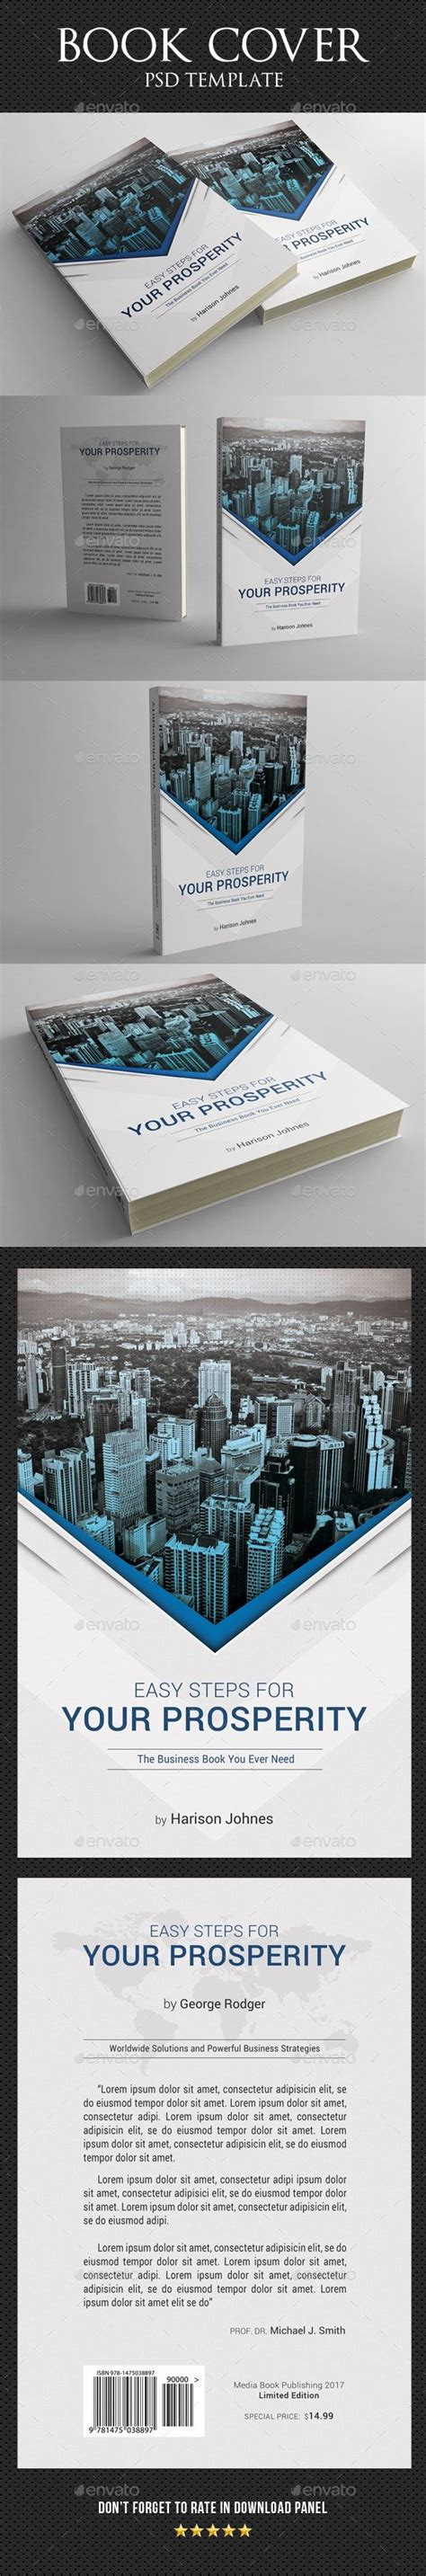 book cover template  ad cover spon book template